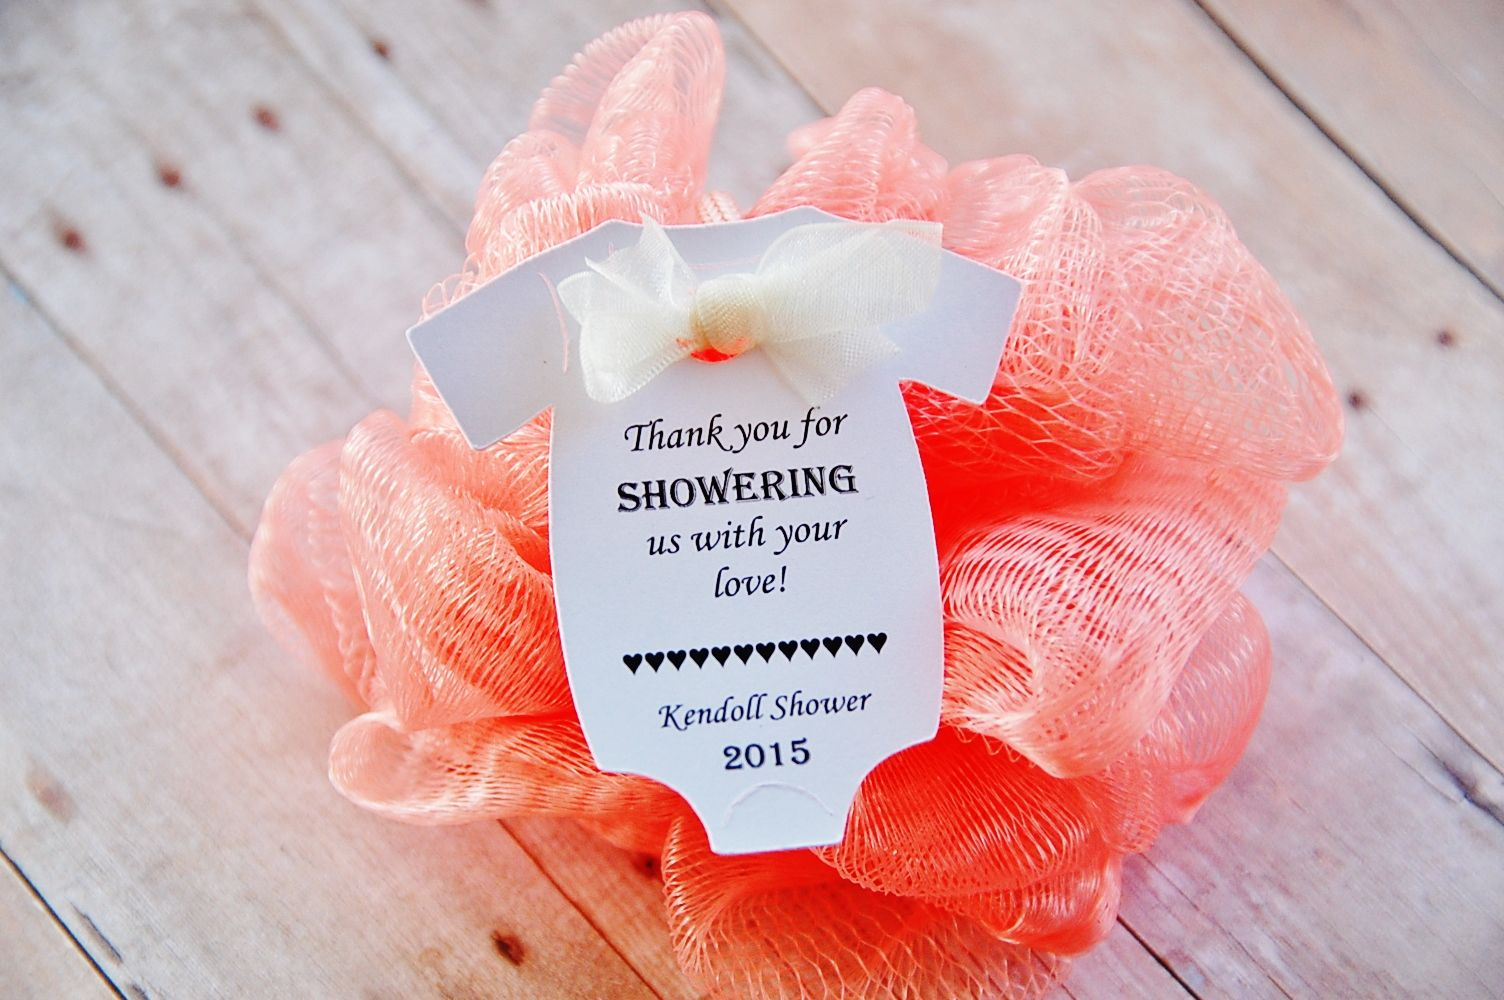 Thank you for showering us with your love baby shower thank you gift ...